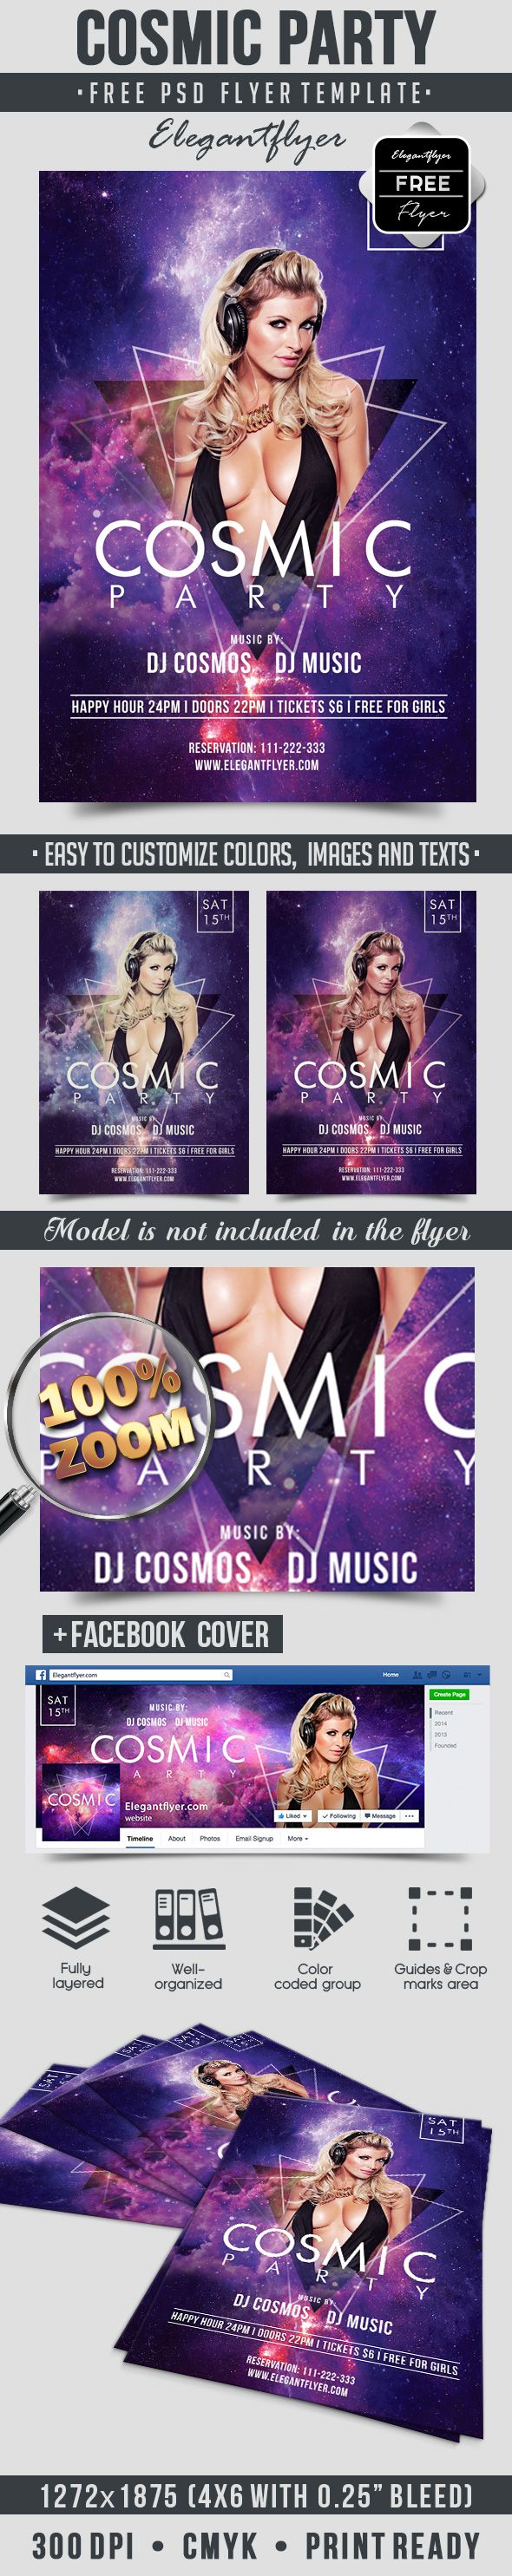 Free Flyer For Cosmic Party Template